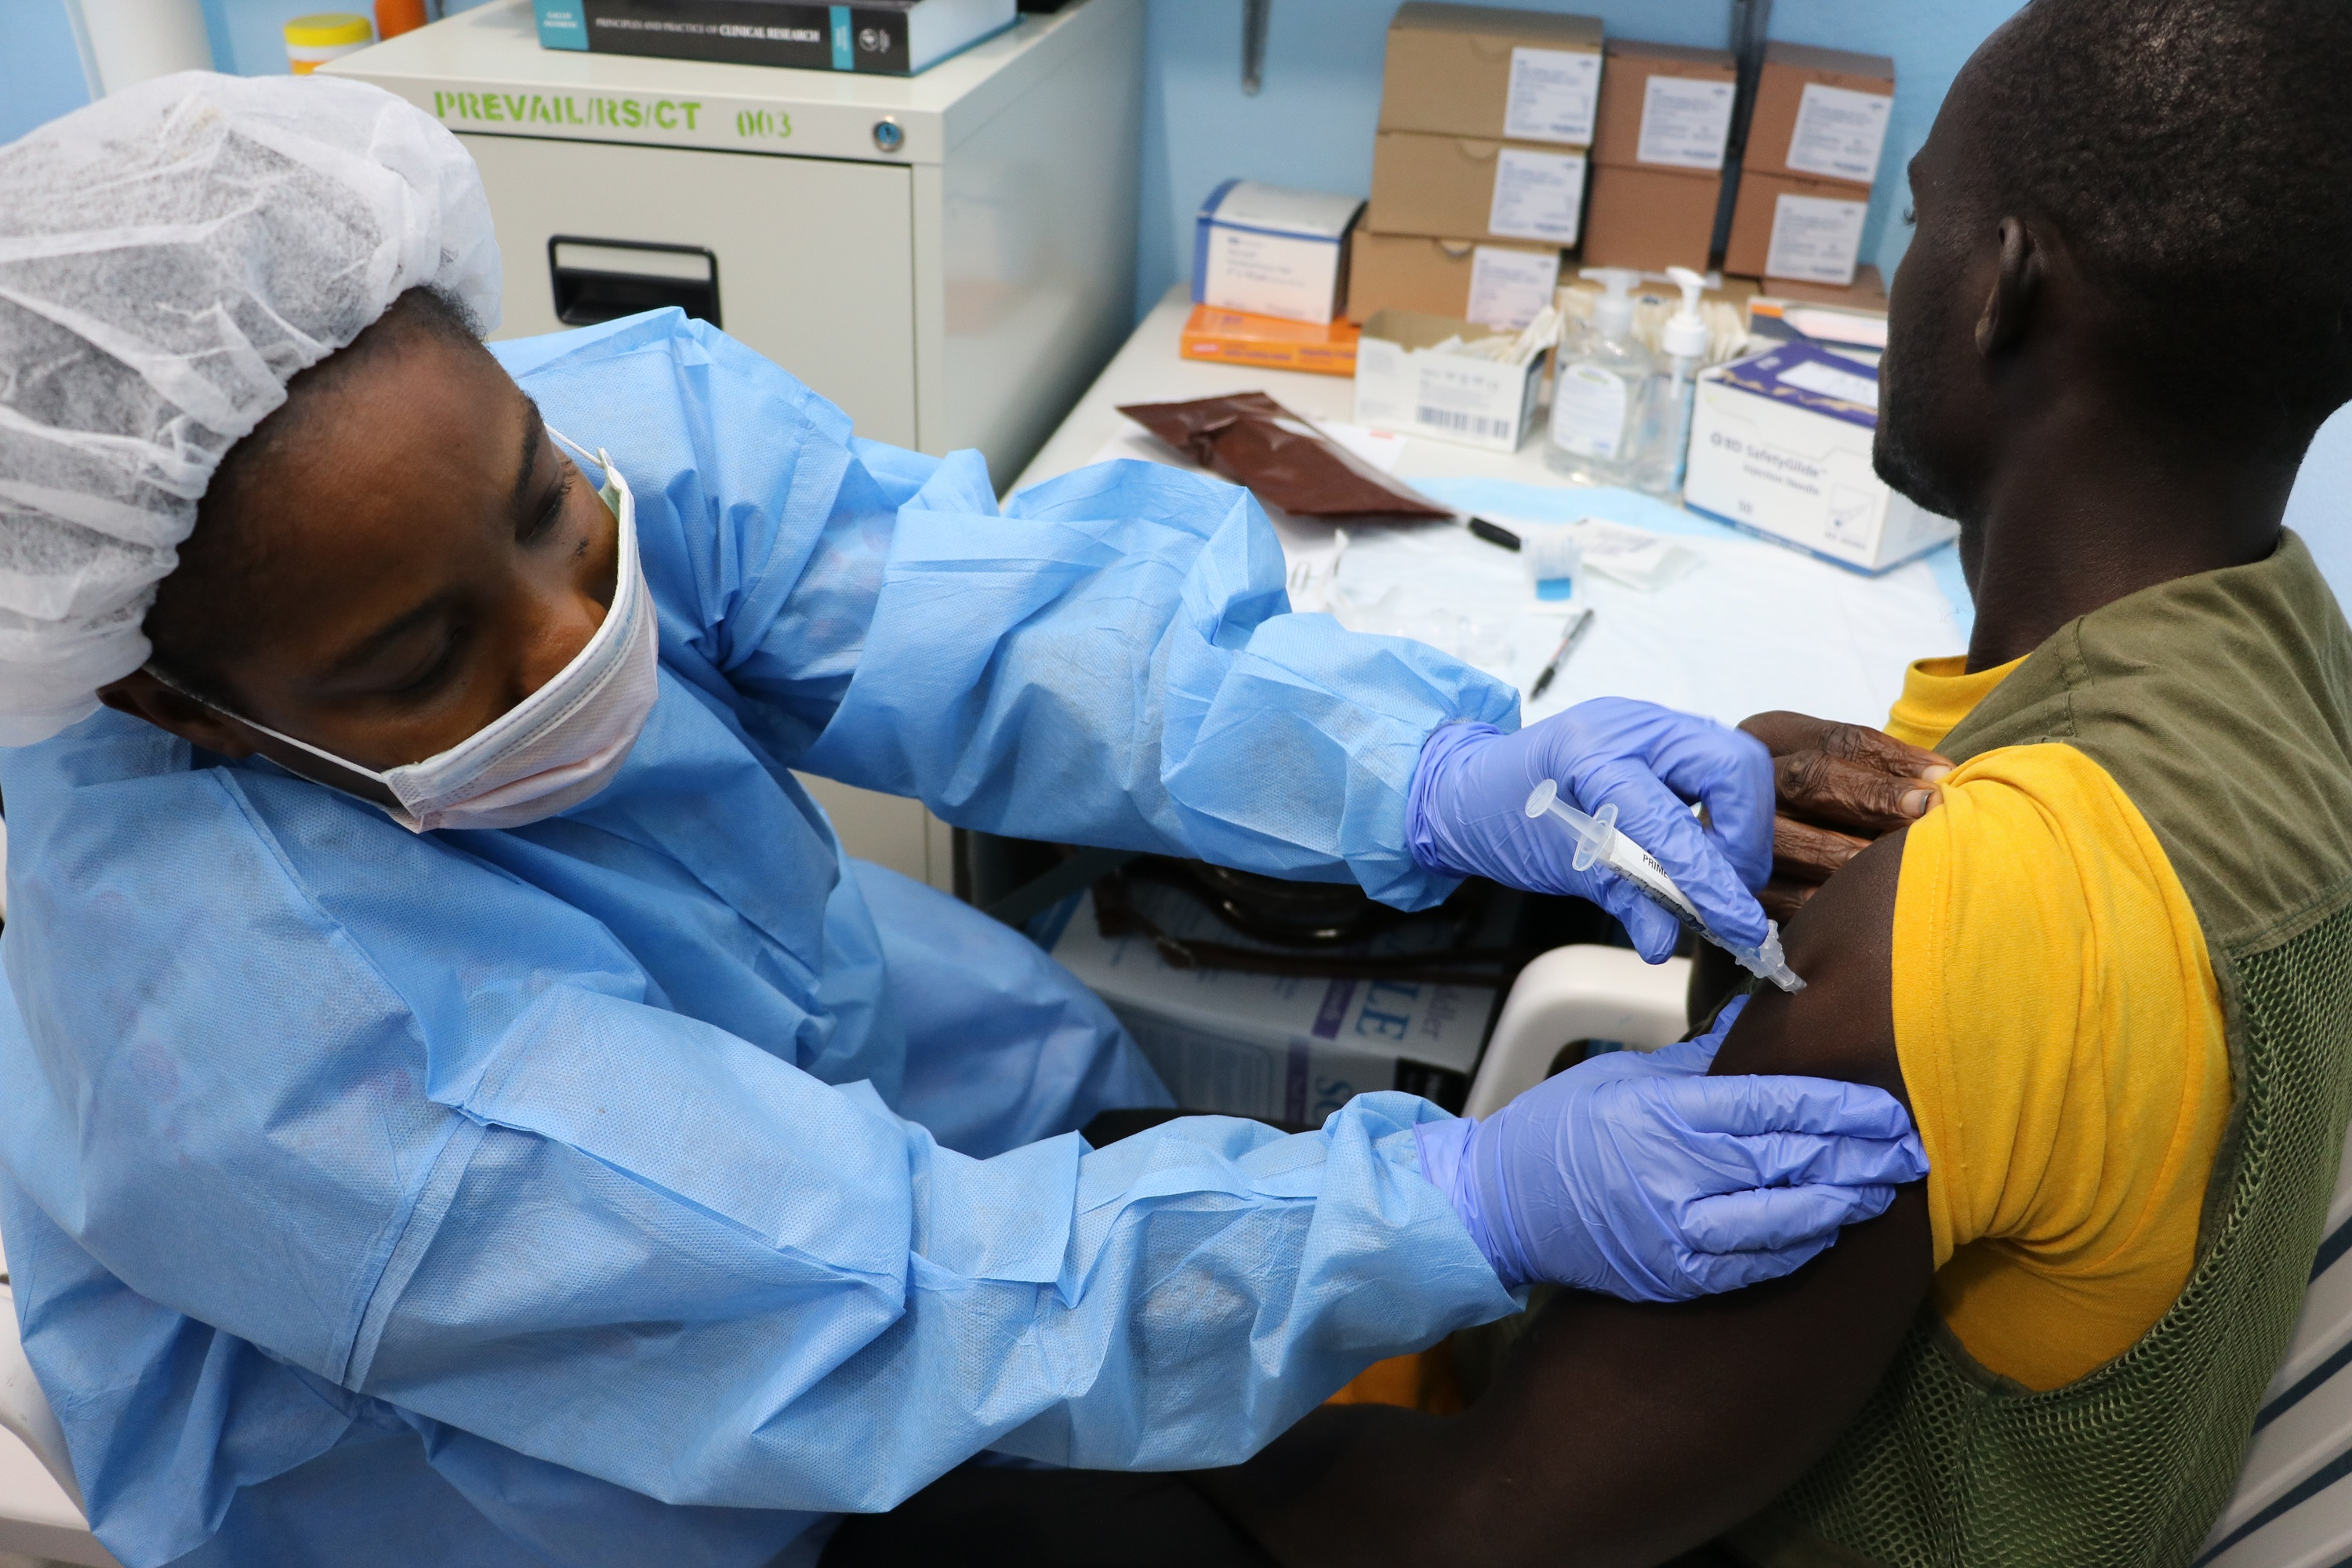 Preparations since the last Ebola outbreak in West Africa have improved the response this time around.